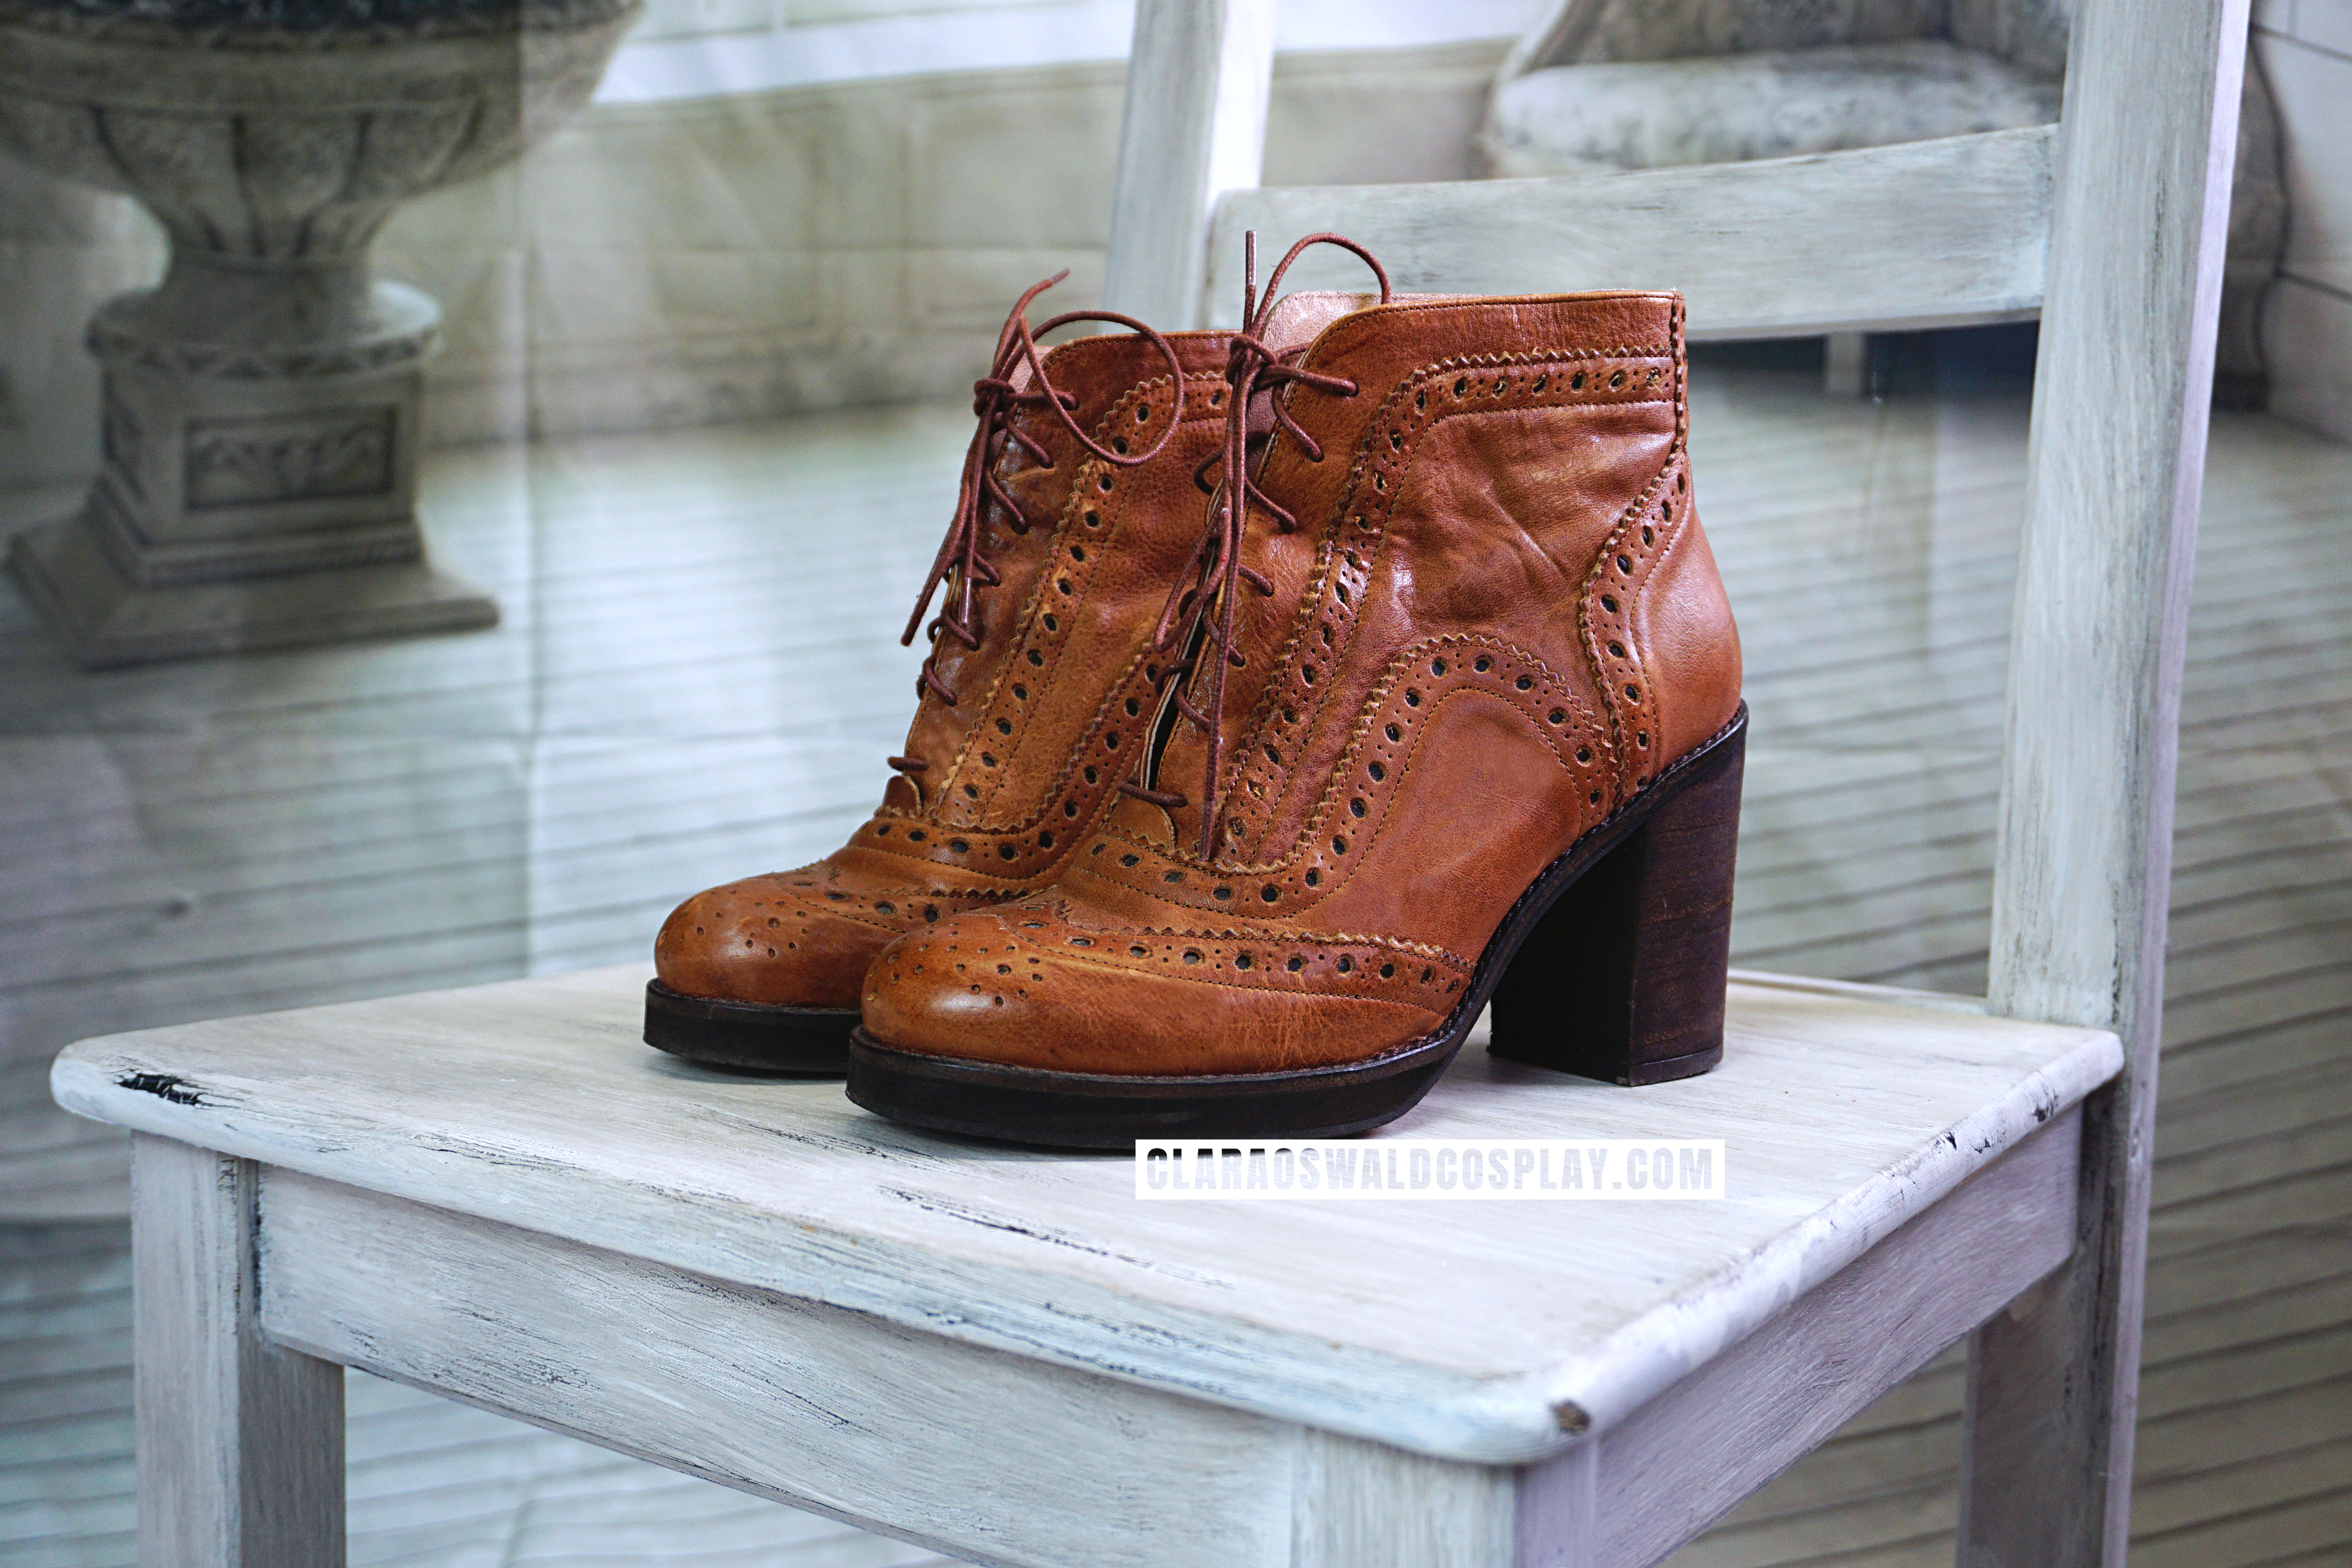 The River Island Brogue Ankle Boots worn by Clara Oswald in Into The Dalek.